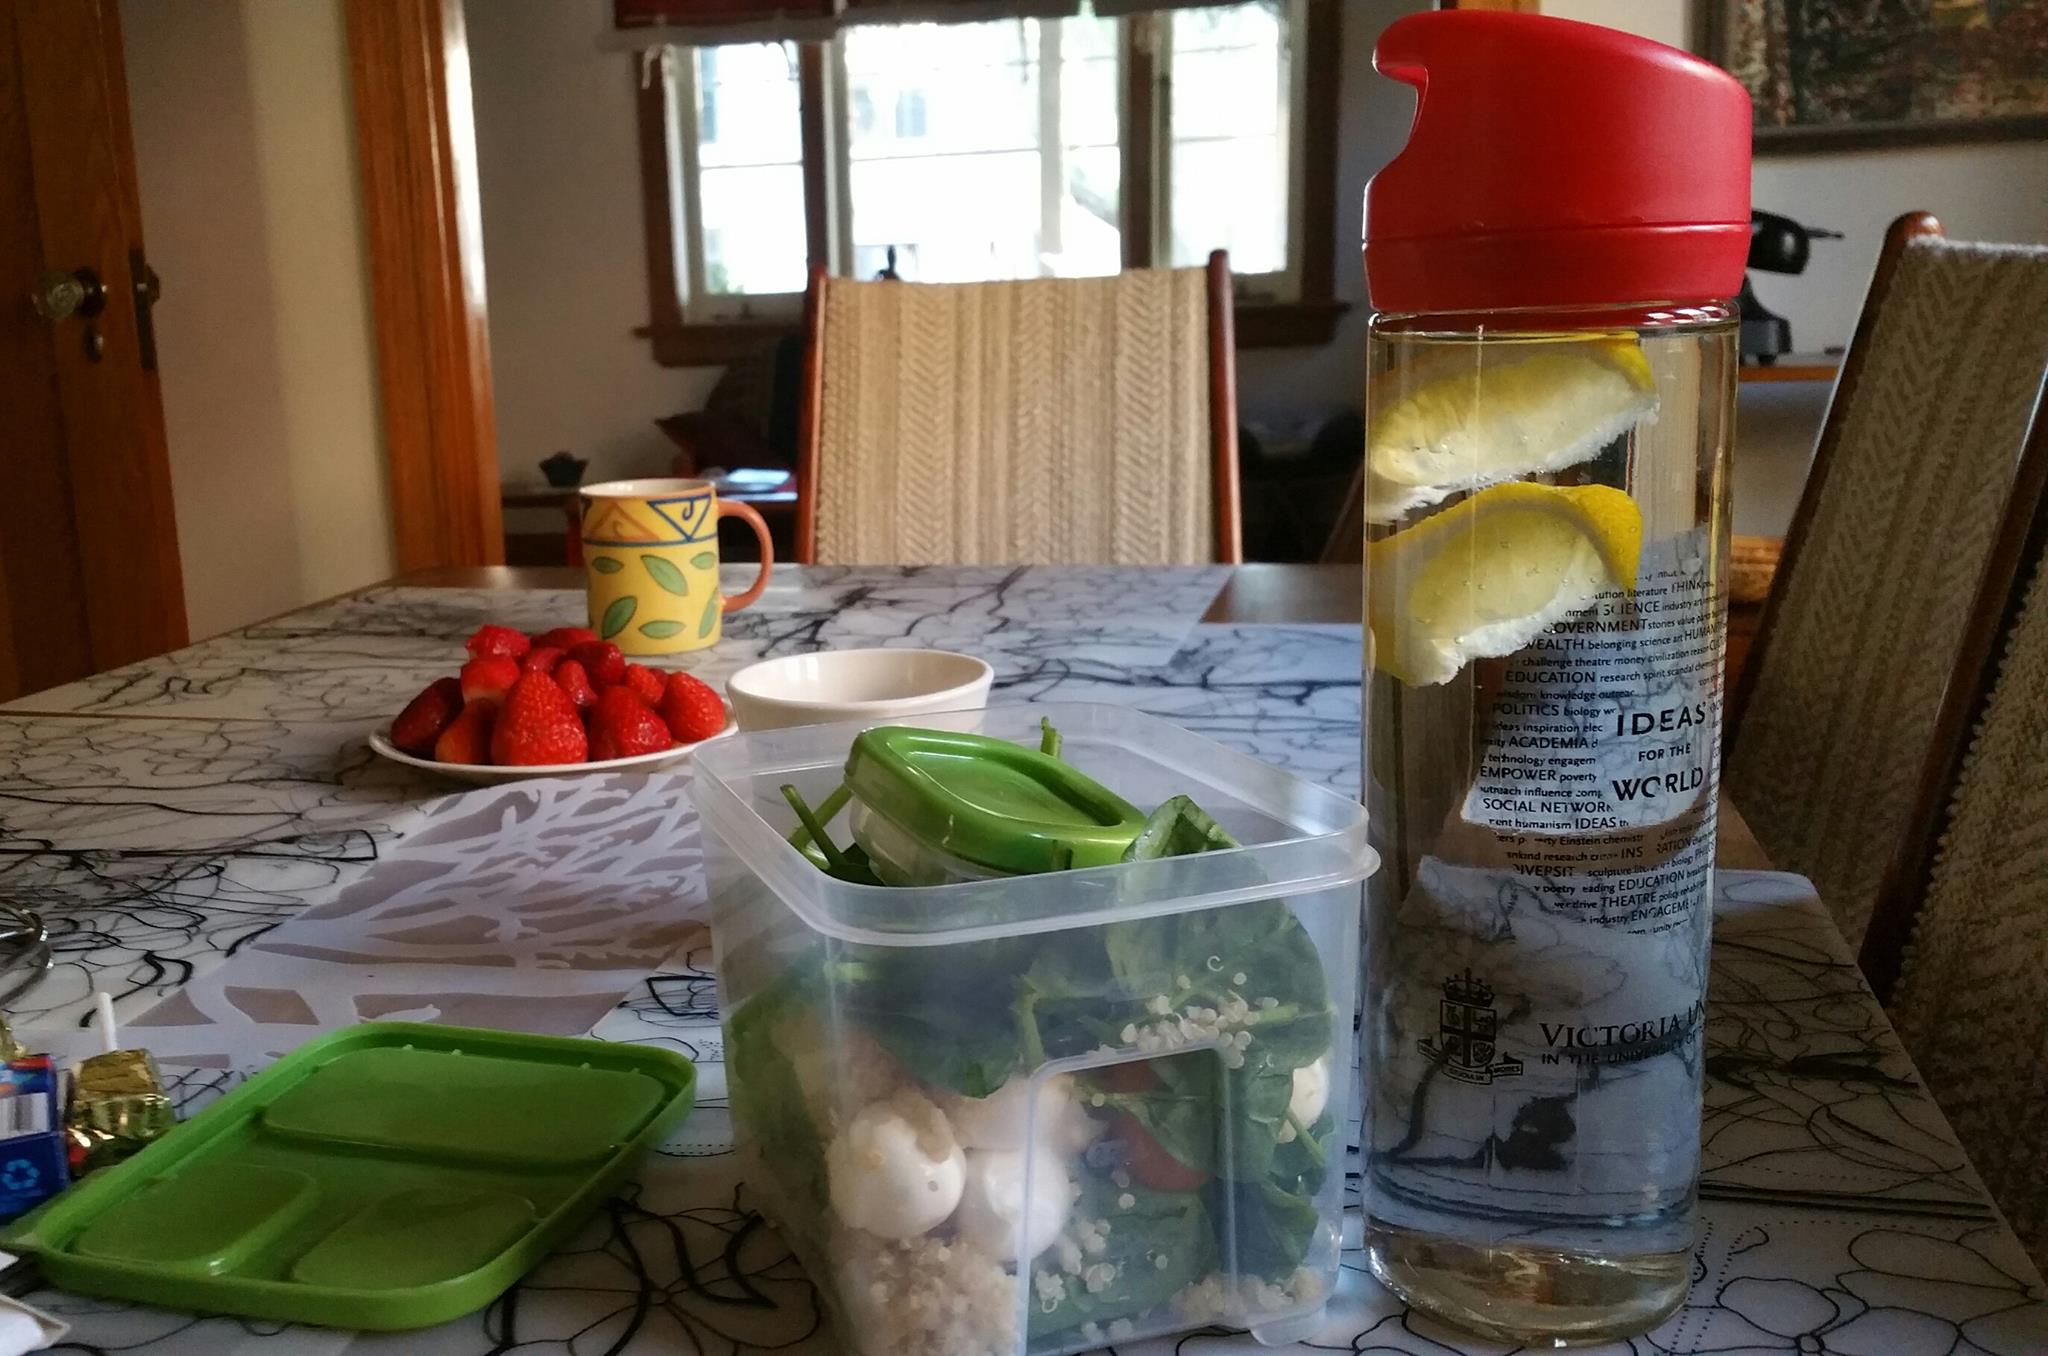 Salad in Tupperware with water bottle and lemon slices